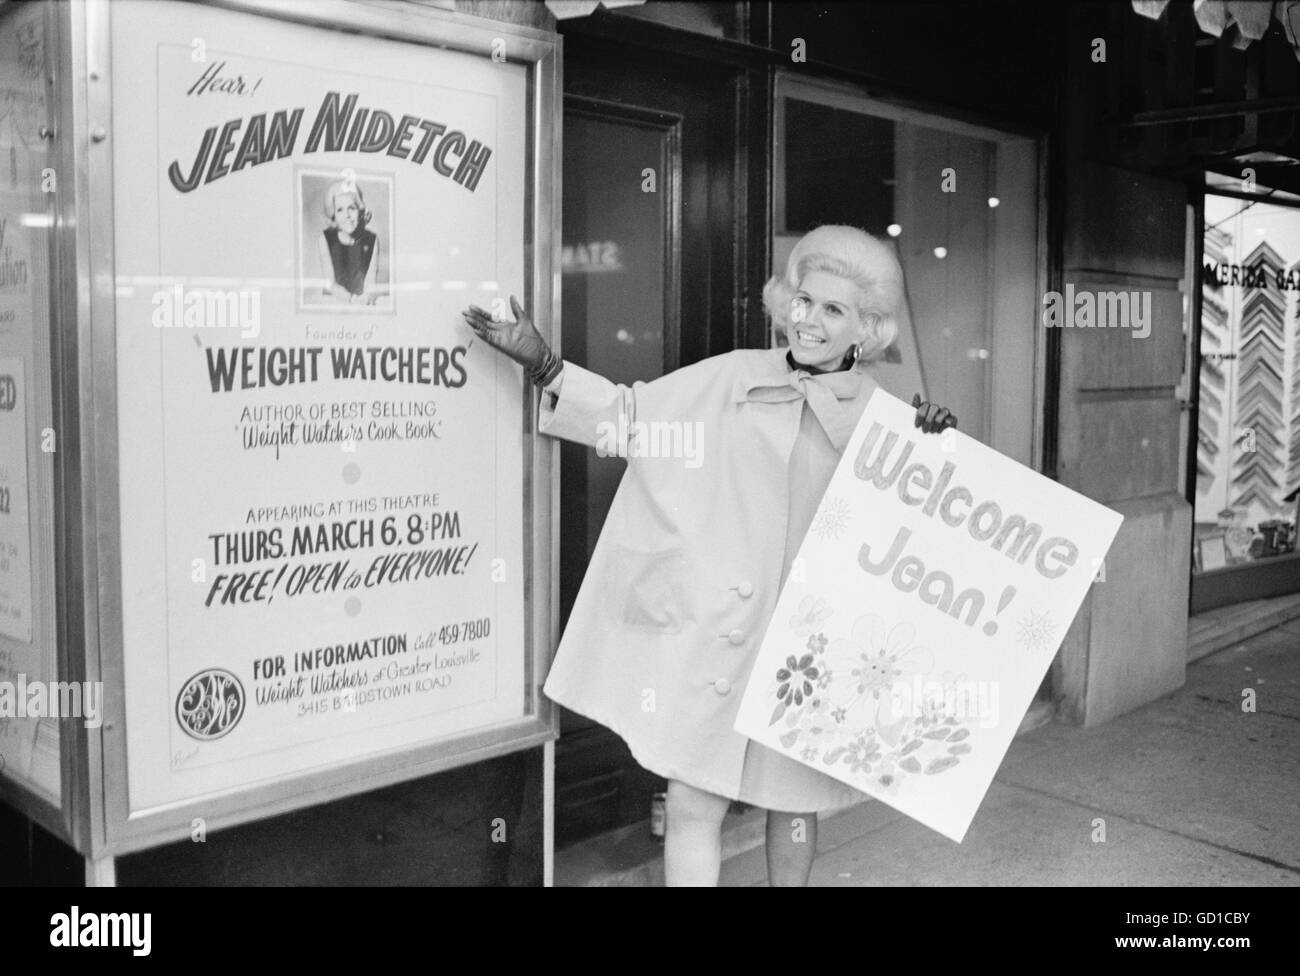 Jean Nidetch, co-founder of Weight Watchers Stock Photo